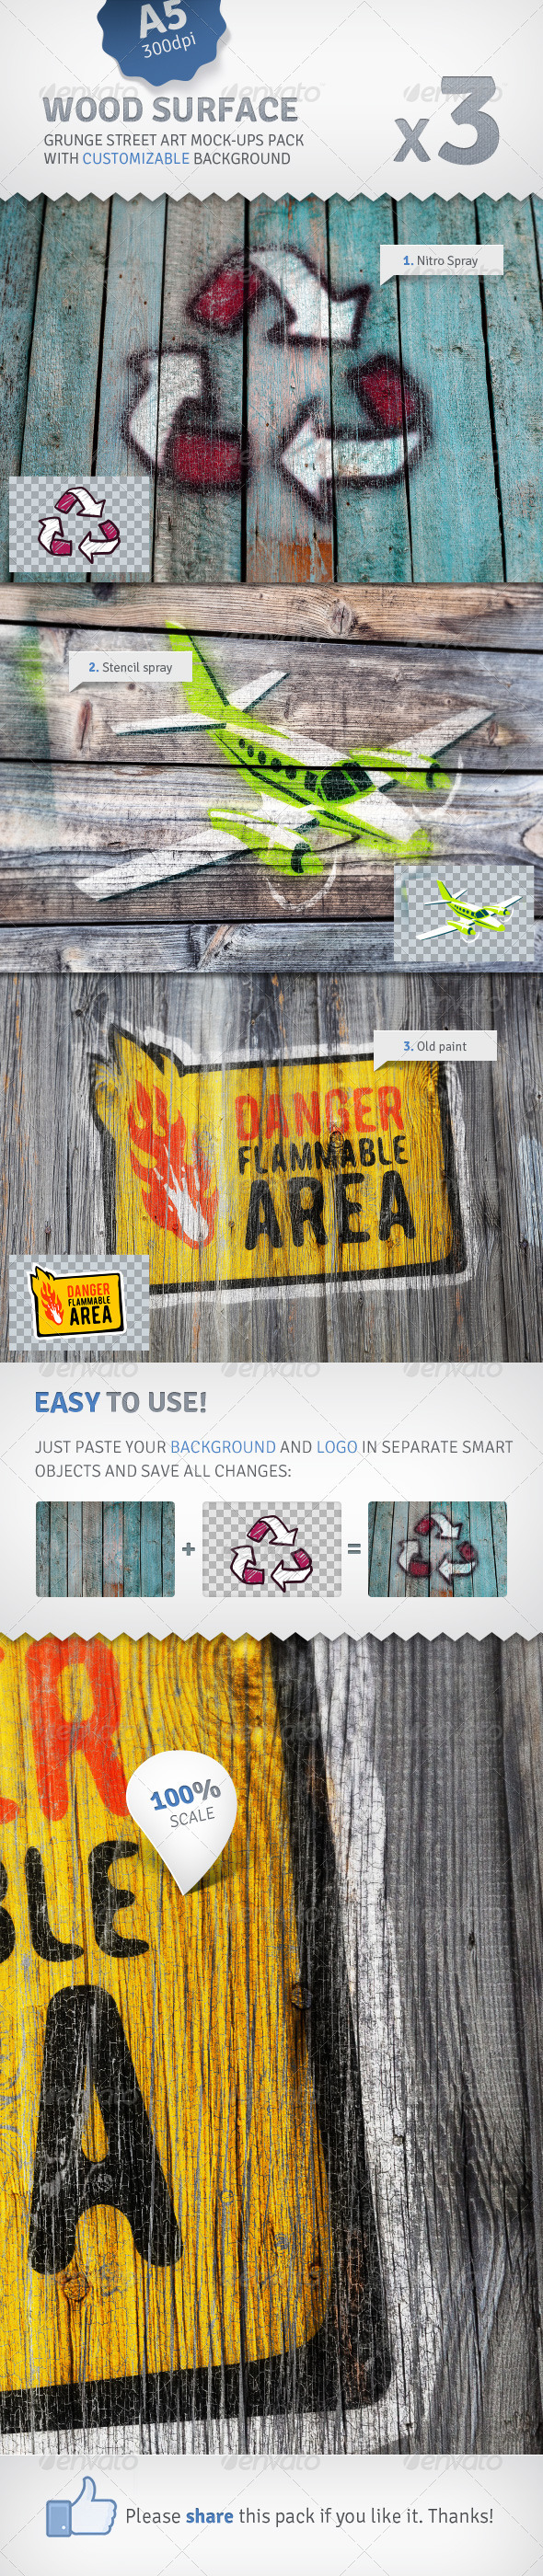 Old Wood - 3 Graffiti Street Art Mockups - Miscellaneous Displays